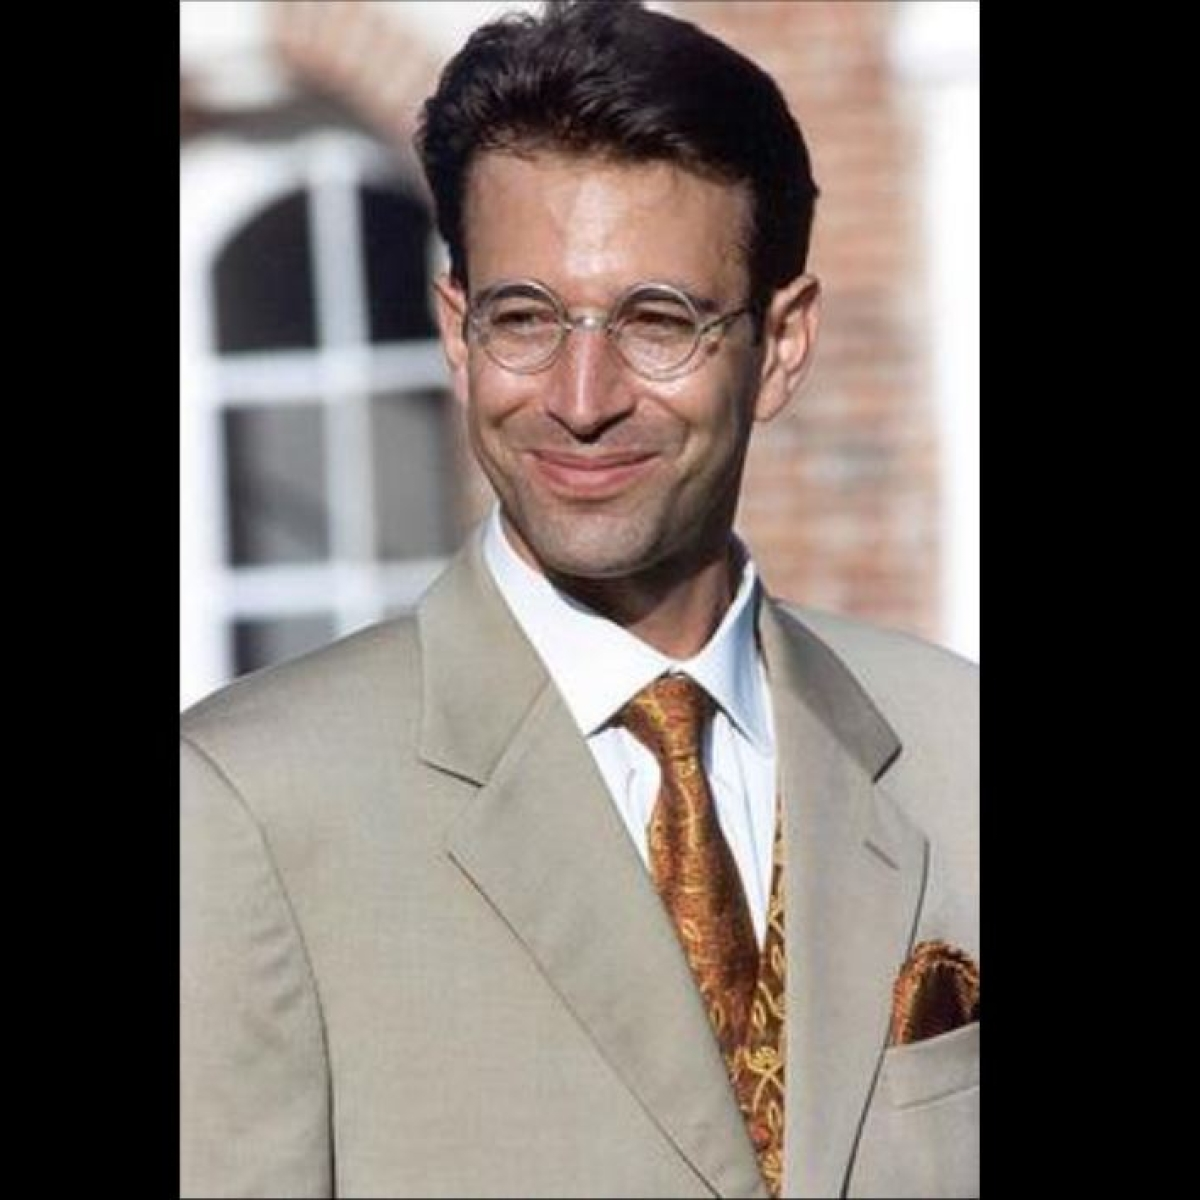 Pakistan SC acquits Daniel Pearl's killers; US 'outraged' by decision to exonerate al-Qaeda terrorist Ahmed Omar Saeed Sheikh